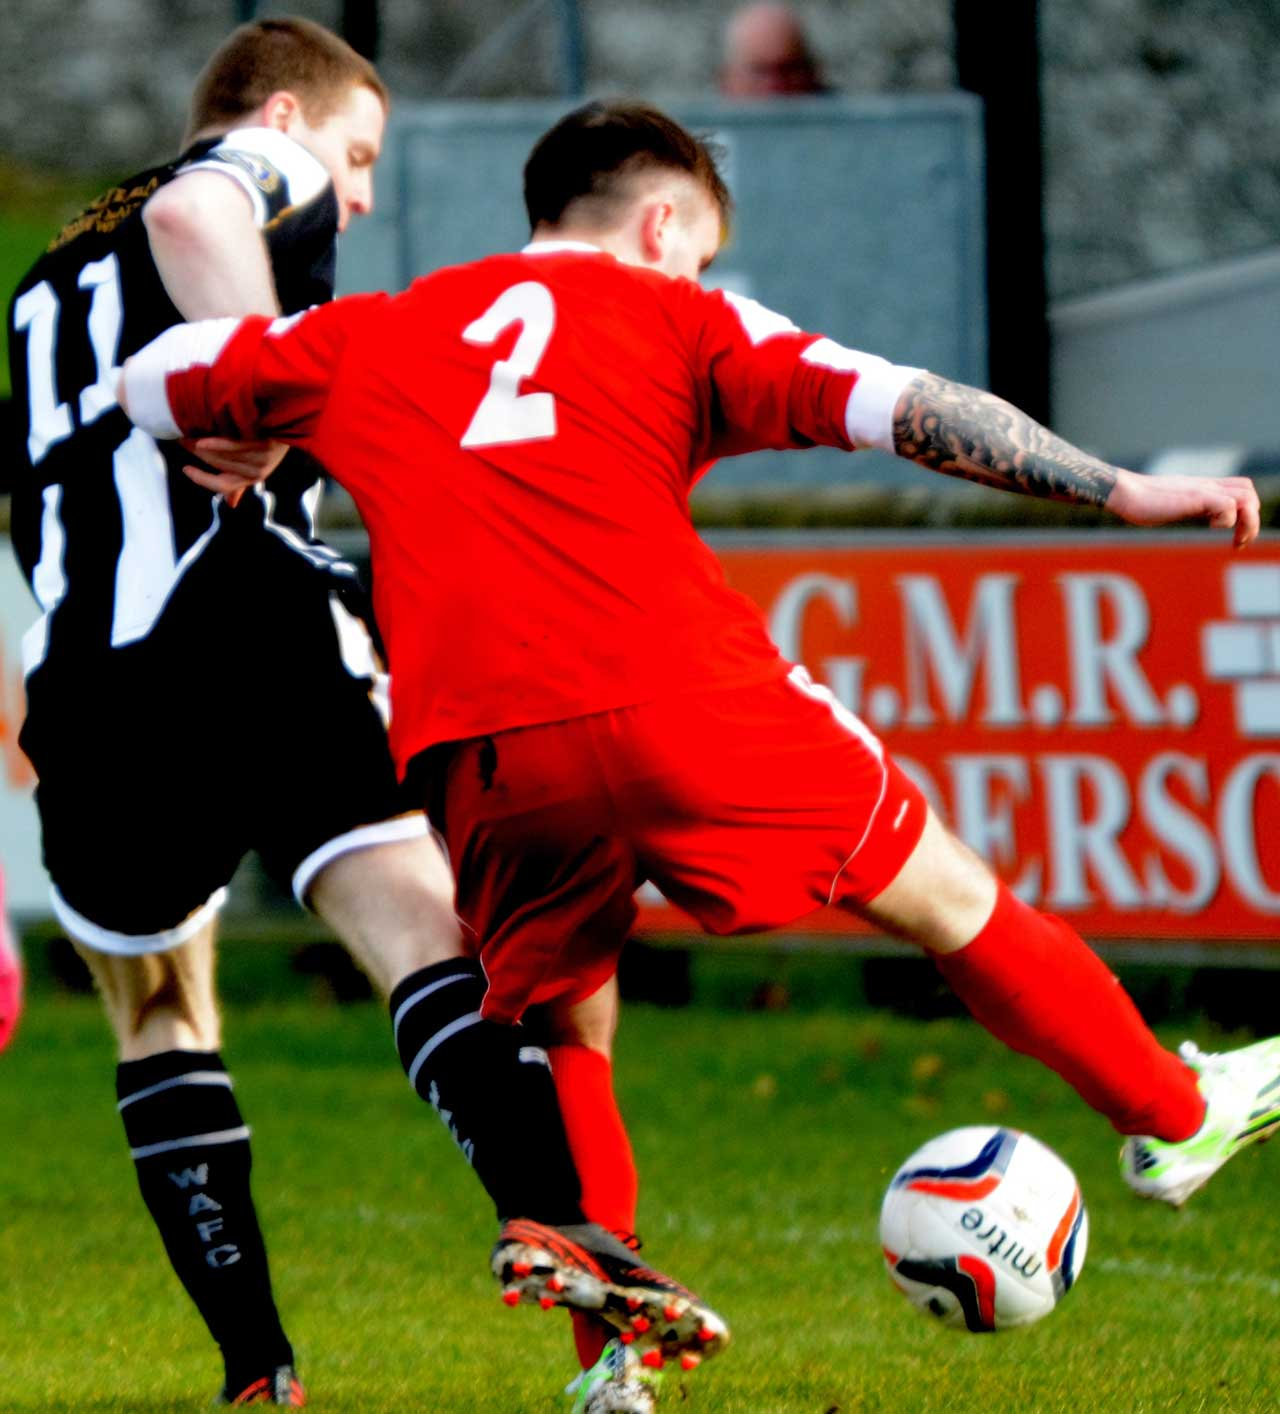 Photo: Wick Academy 2 Lossiemouth 1